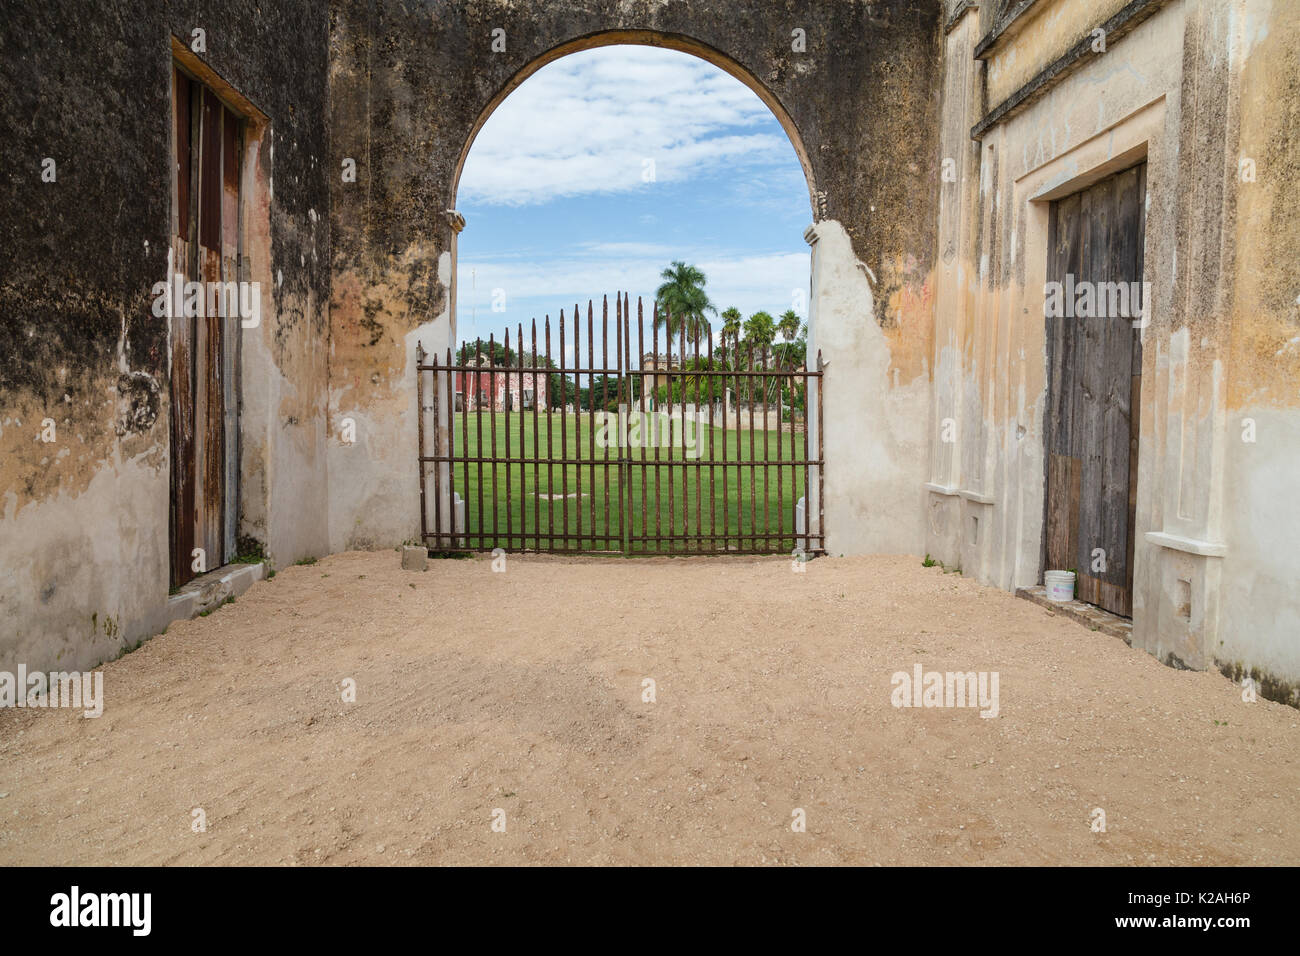 One of pathway to the outer field at Hacienda Yaxcopoil, Yaxcopoil, Yucatan, Mexico. - Stock Image